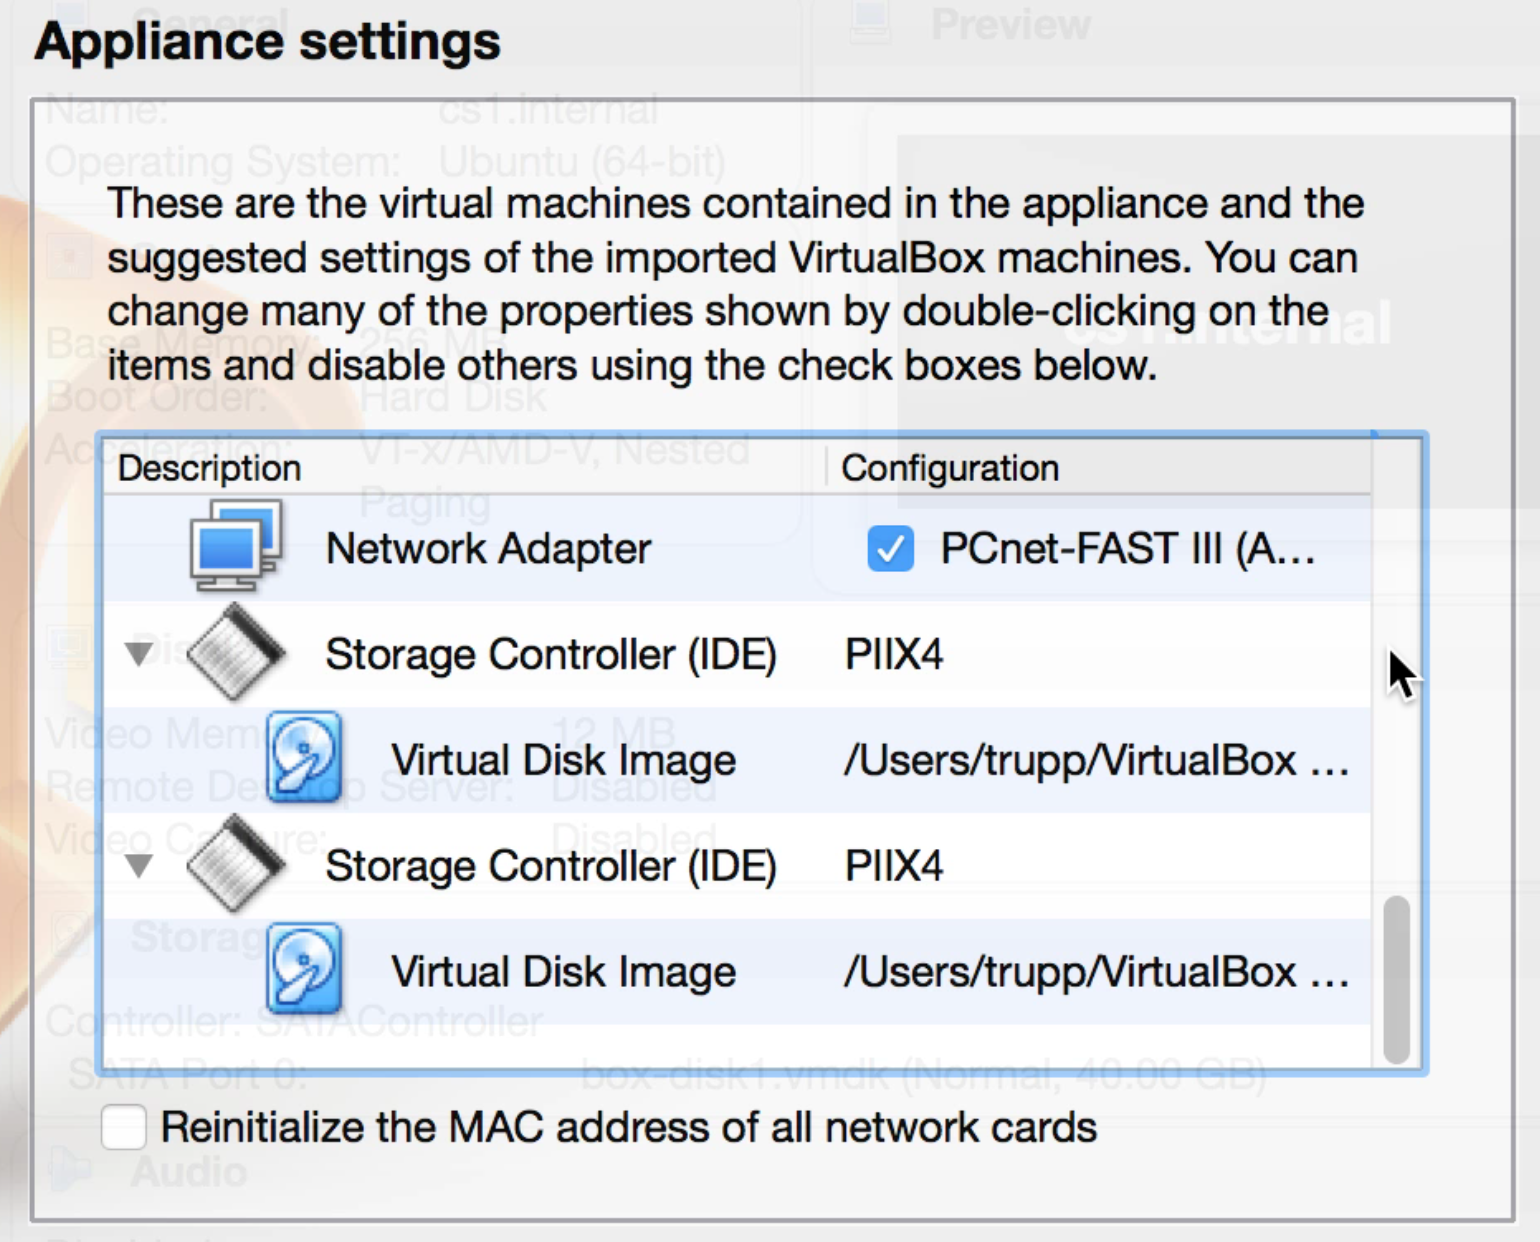 Why the BIG-IP VE OVA does not work on Virtualbox DevCentral